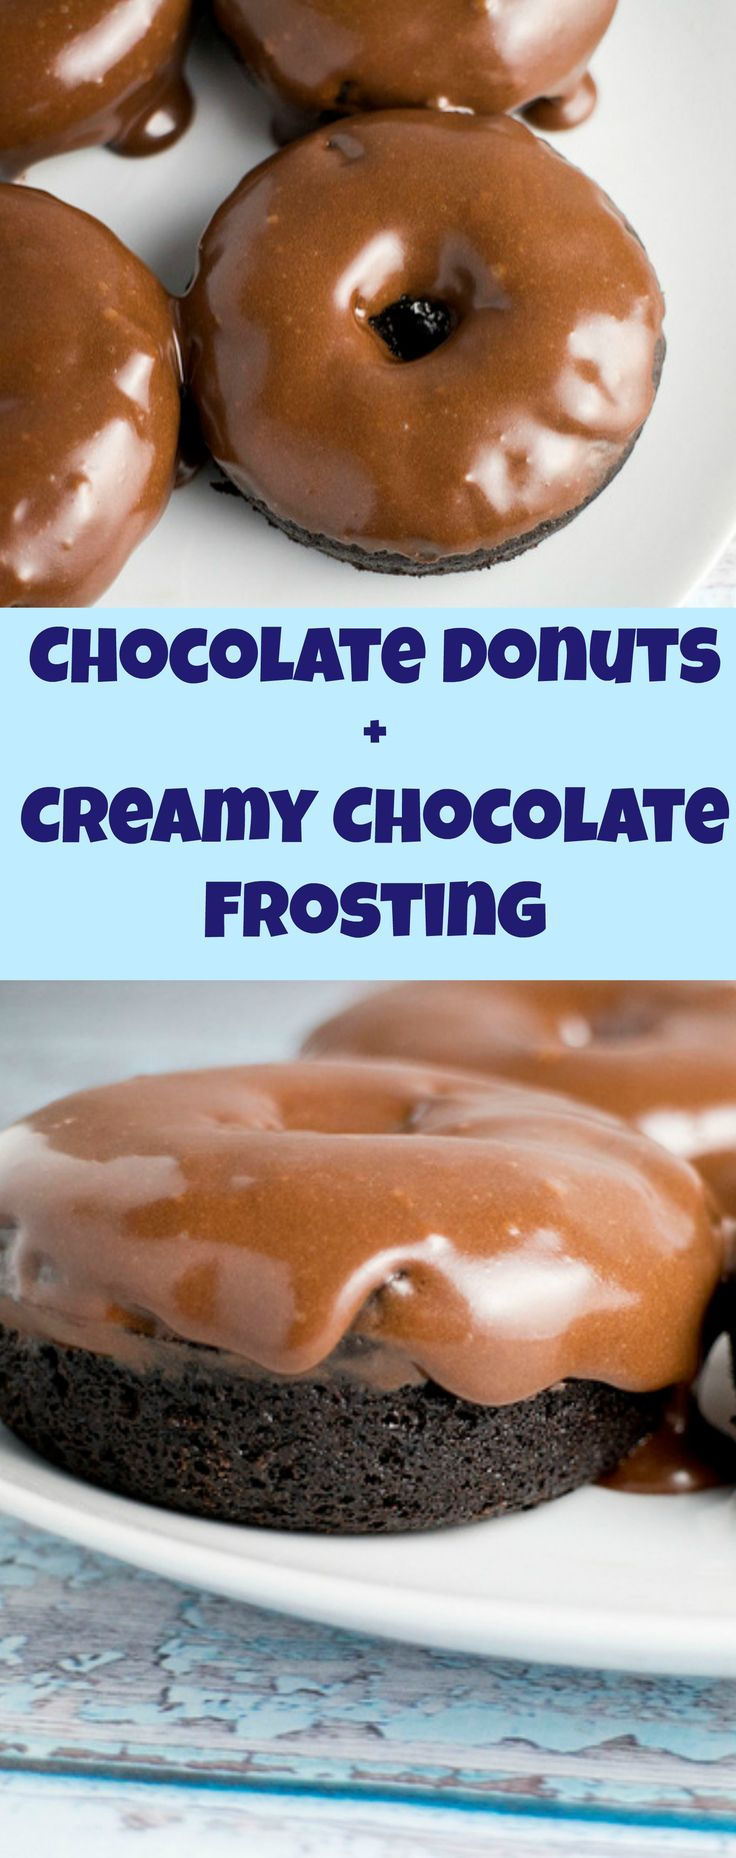 This Chocolate Donuts with Creamy Chocolate Frosting recipe is the best! Also included is a dairy free vegan option!